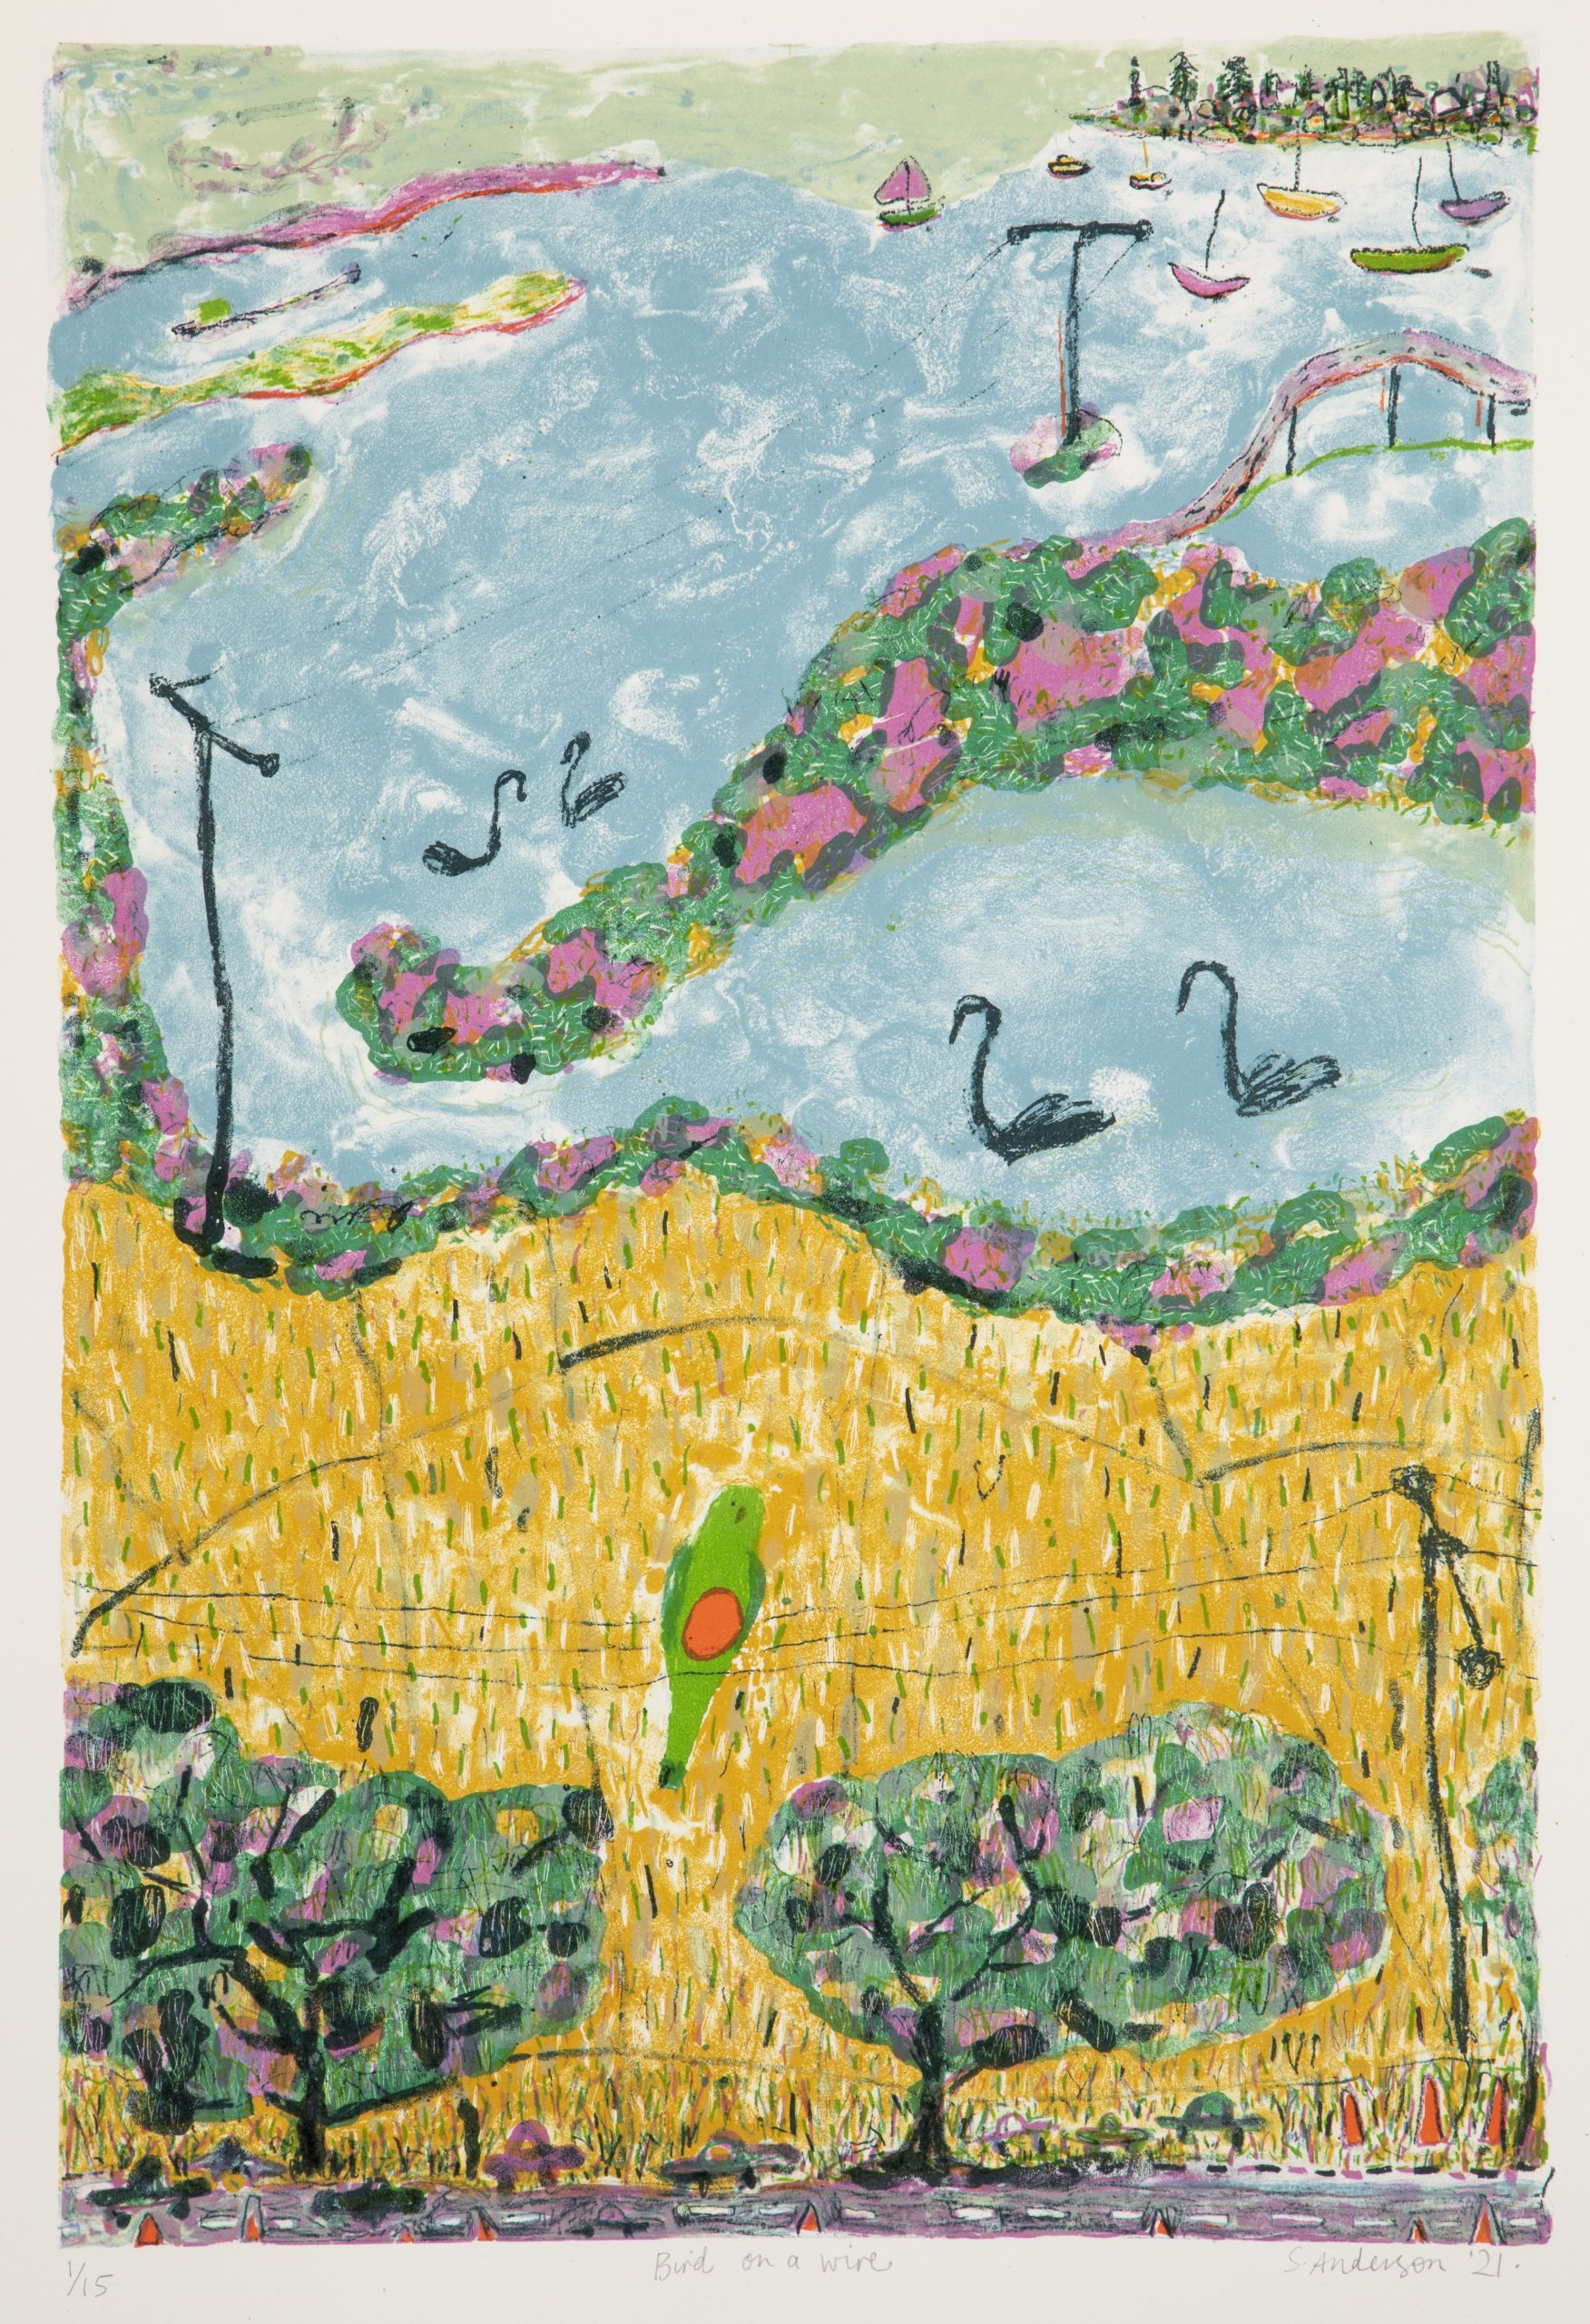 Sue Anderson 'Bird on a wire' new lithograph